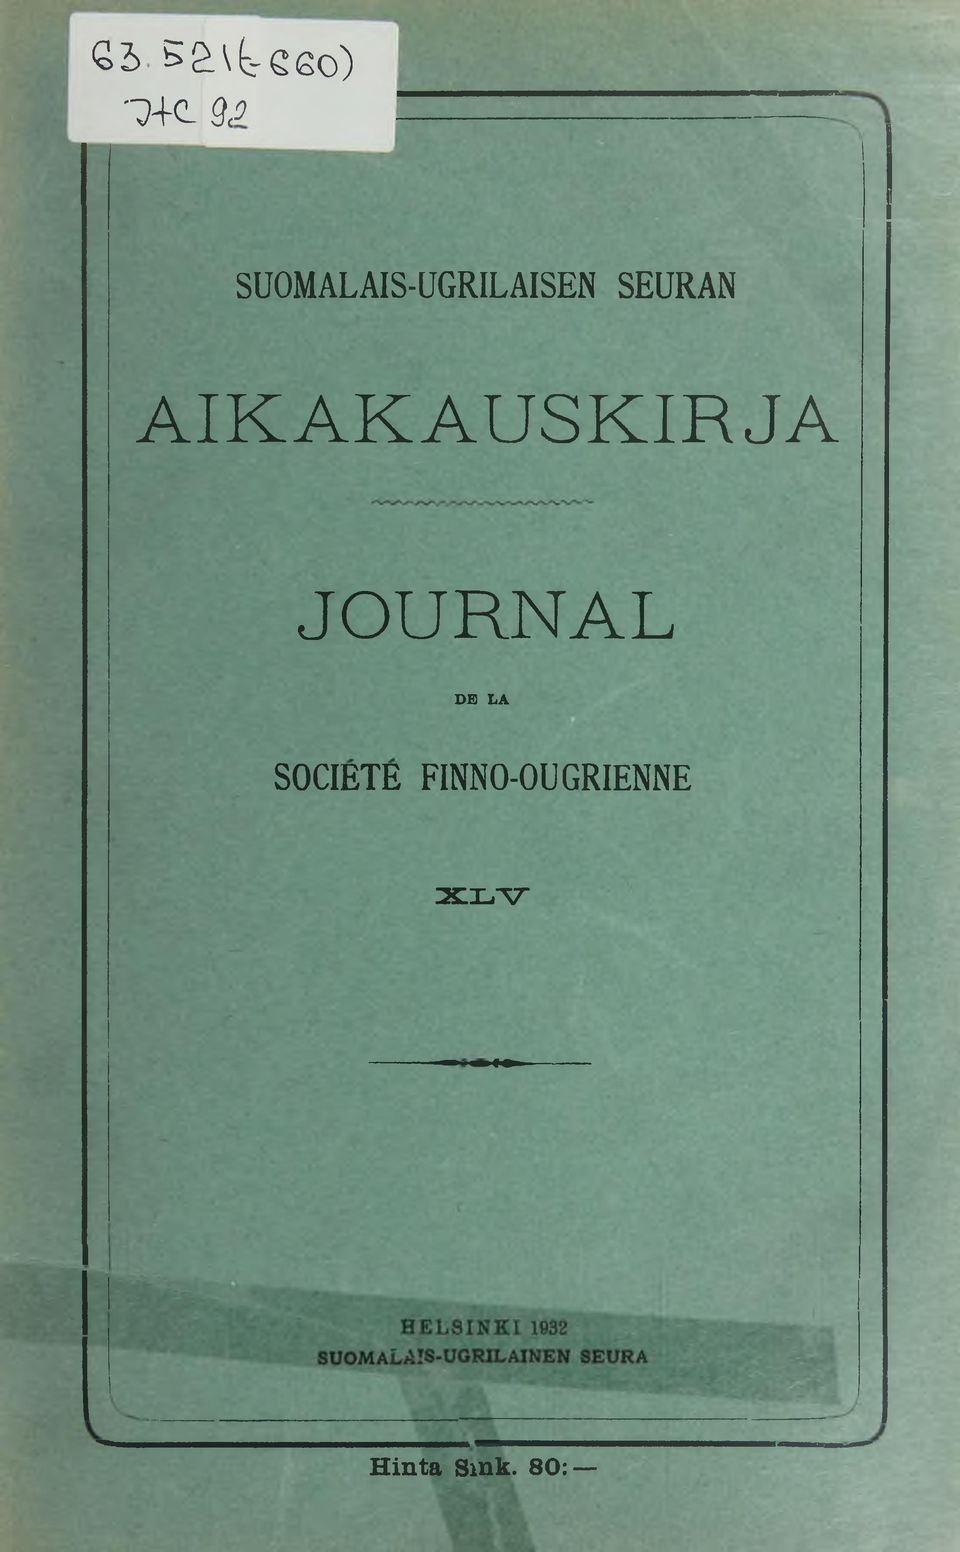 AIKAKAUSKIRJA JOURNAL DB LA SOCIETE